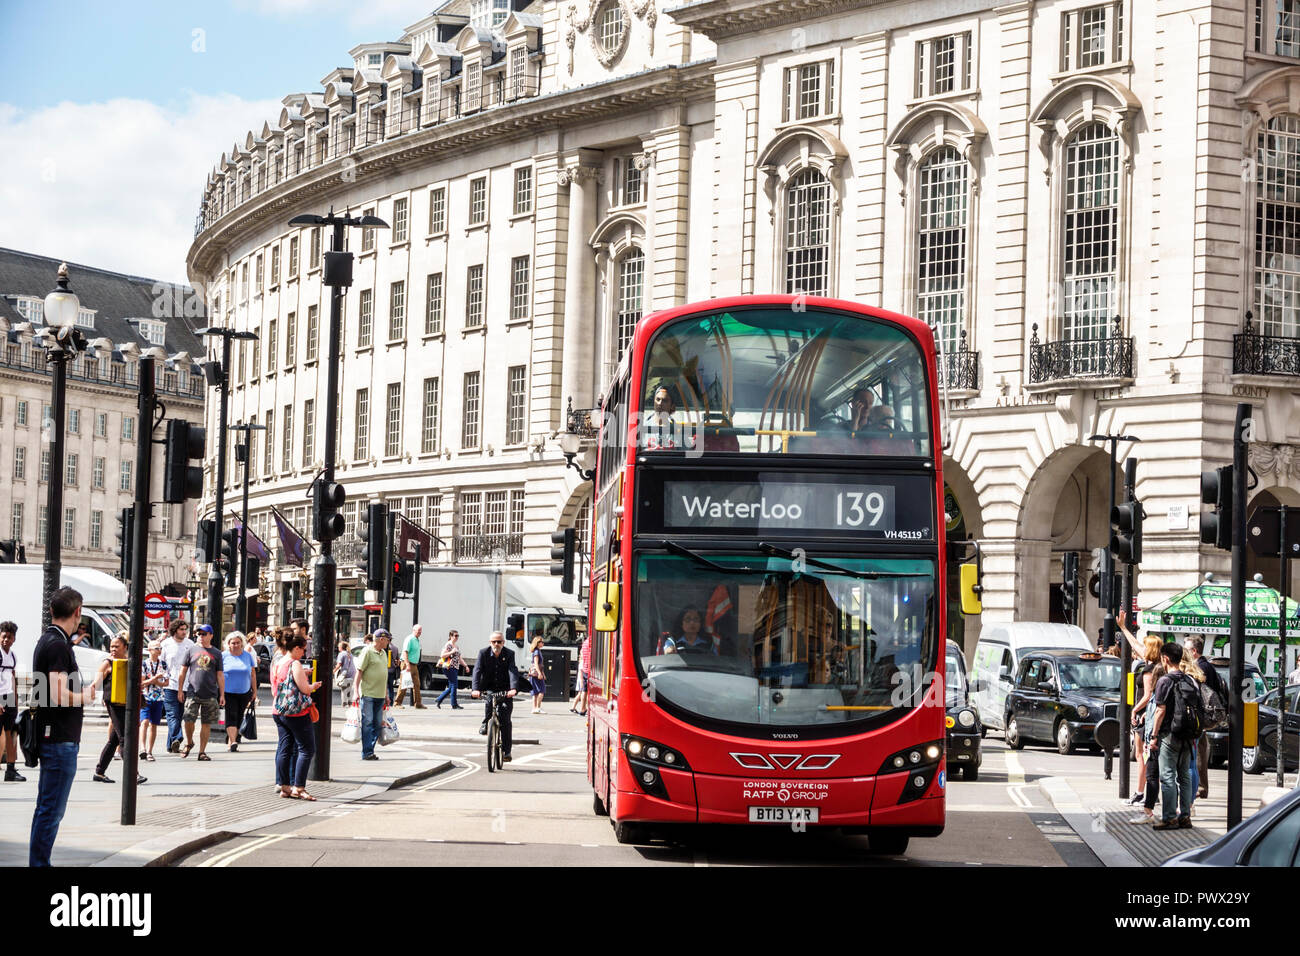 London England United Kingdom Great Britain West End Piccadilly Circus St Jamess Regent Street Red Double Decker Bus Public Transportation Pedestria